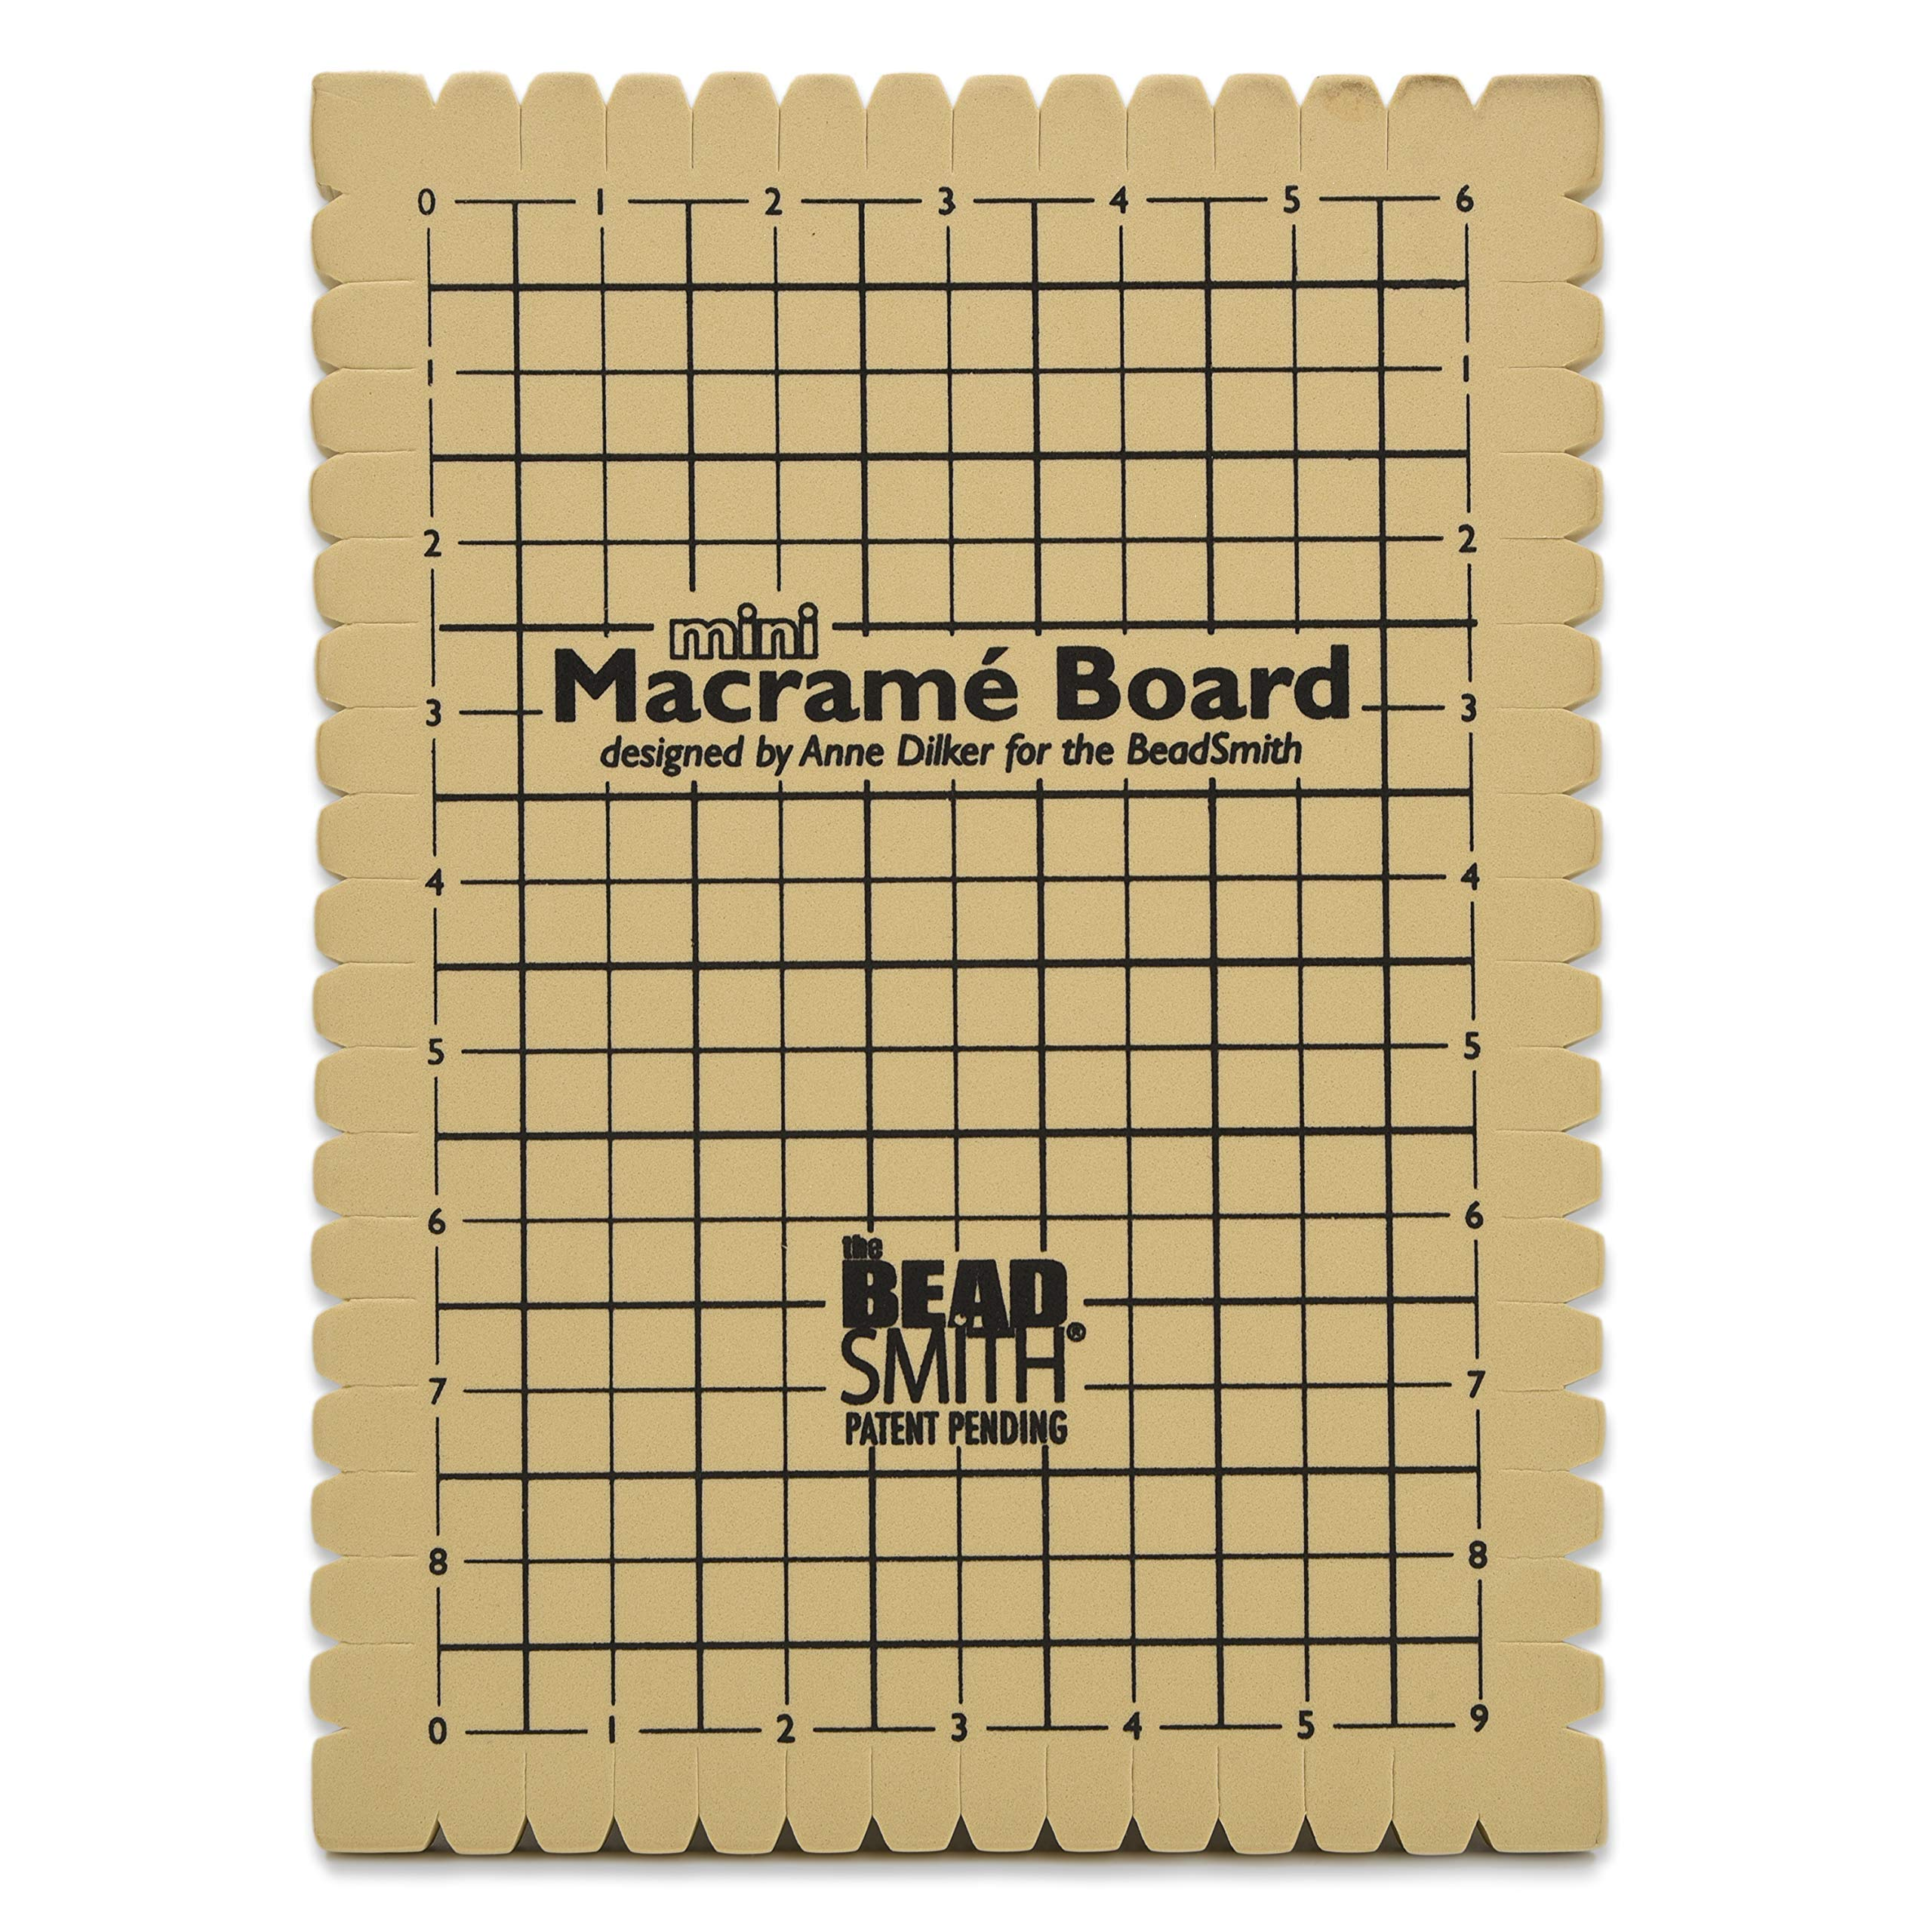 """The Beadsmith Mini Macrame Board, 7.5 x 10.5 inches, 0.5 inch thick foam, 6 x 9"""" grid for measuring, bracelet project with instructions included, create macrame and knotting creations"""